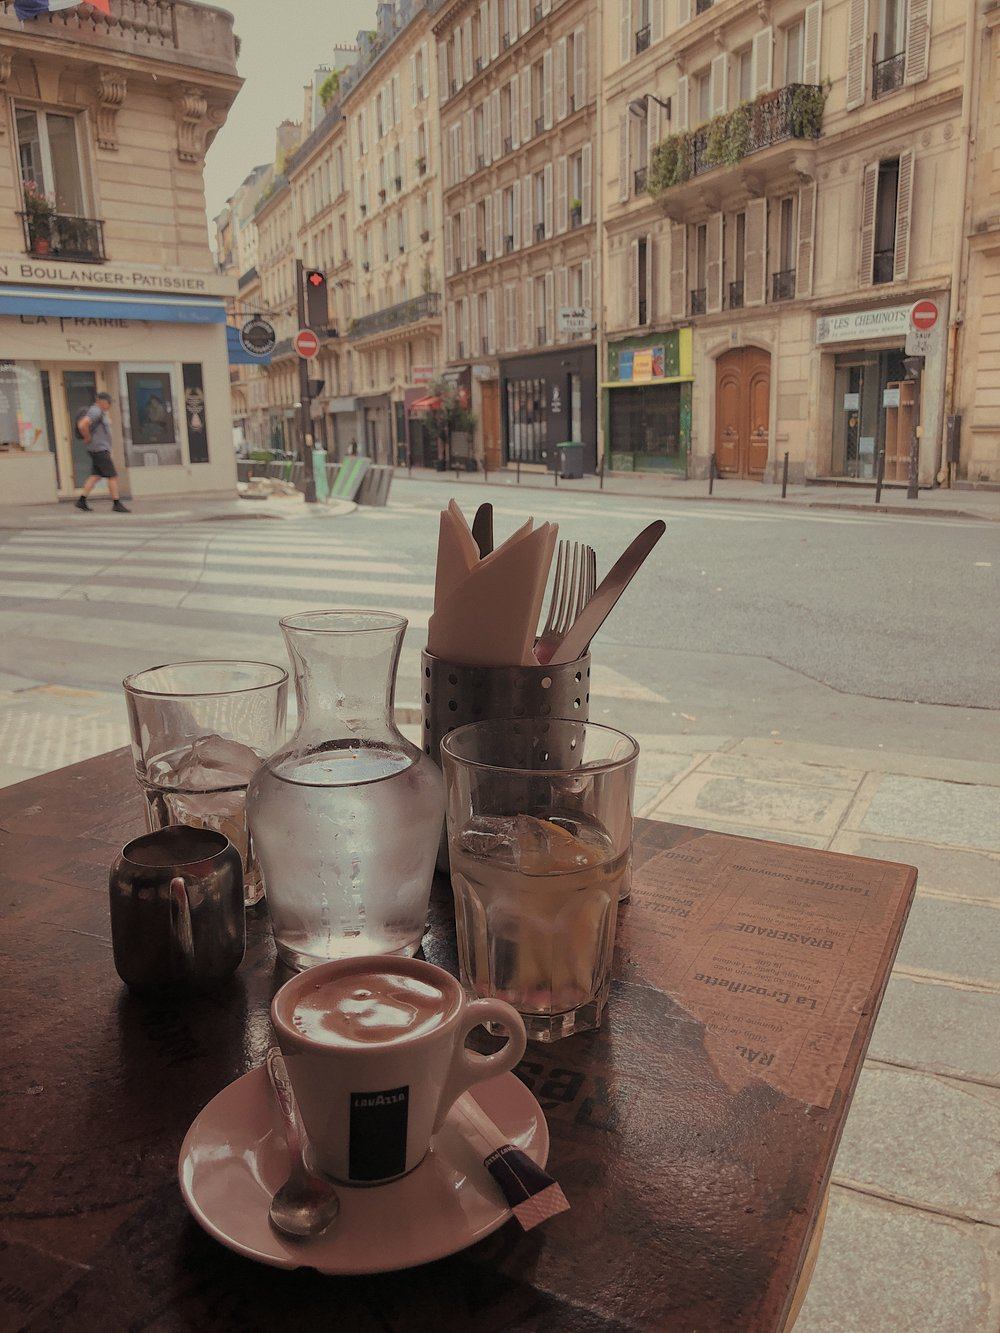 Parisian breakfast is the best breakfast. Nothing with espresso.